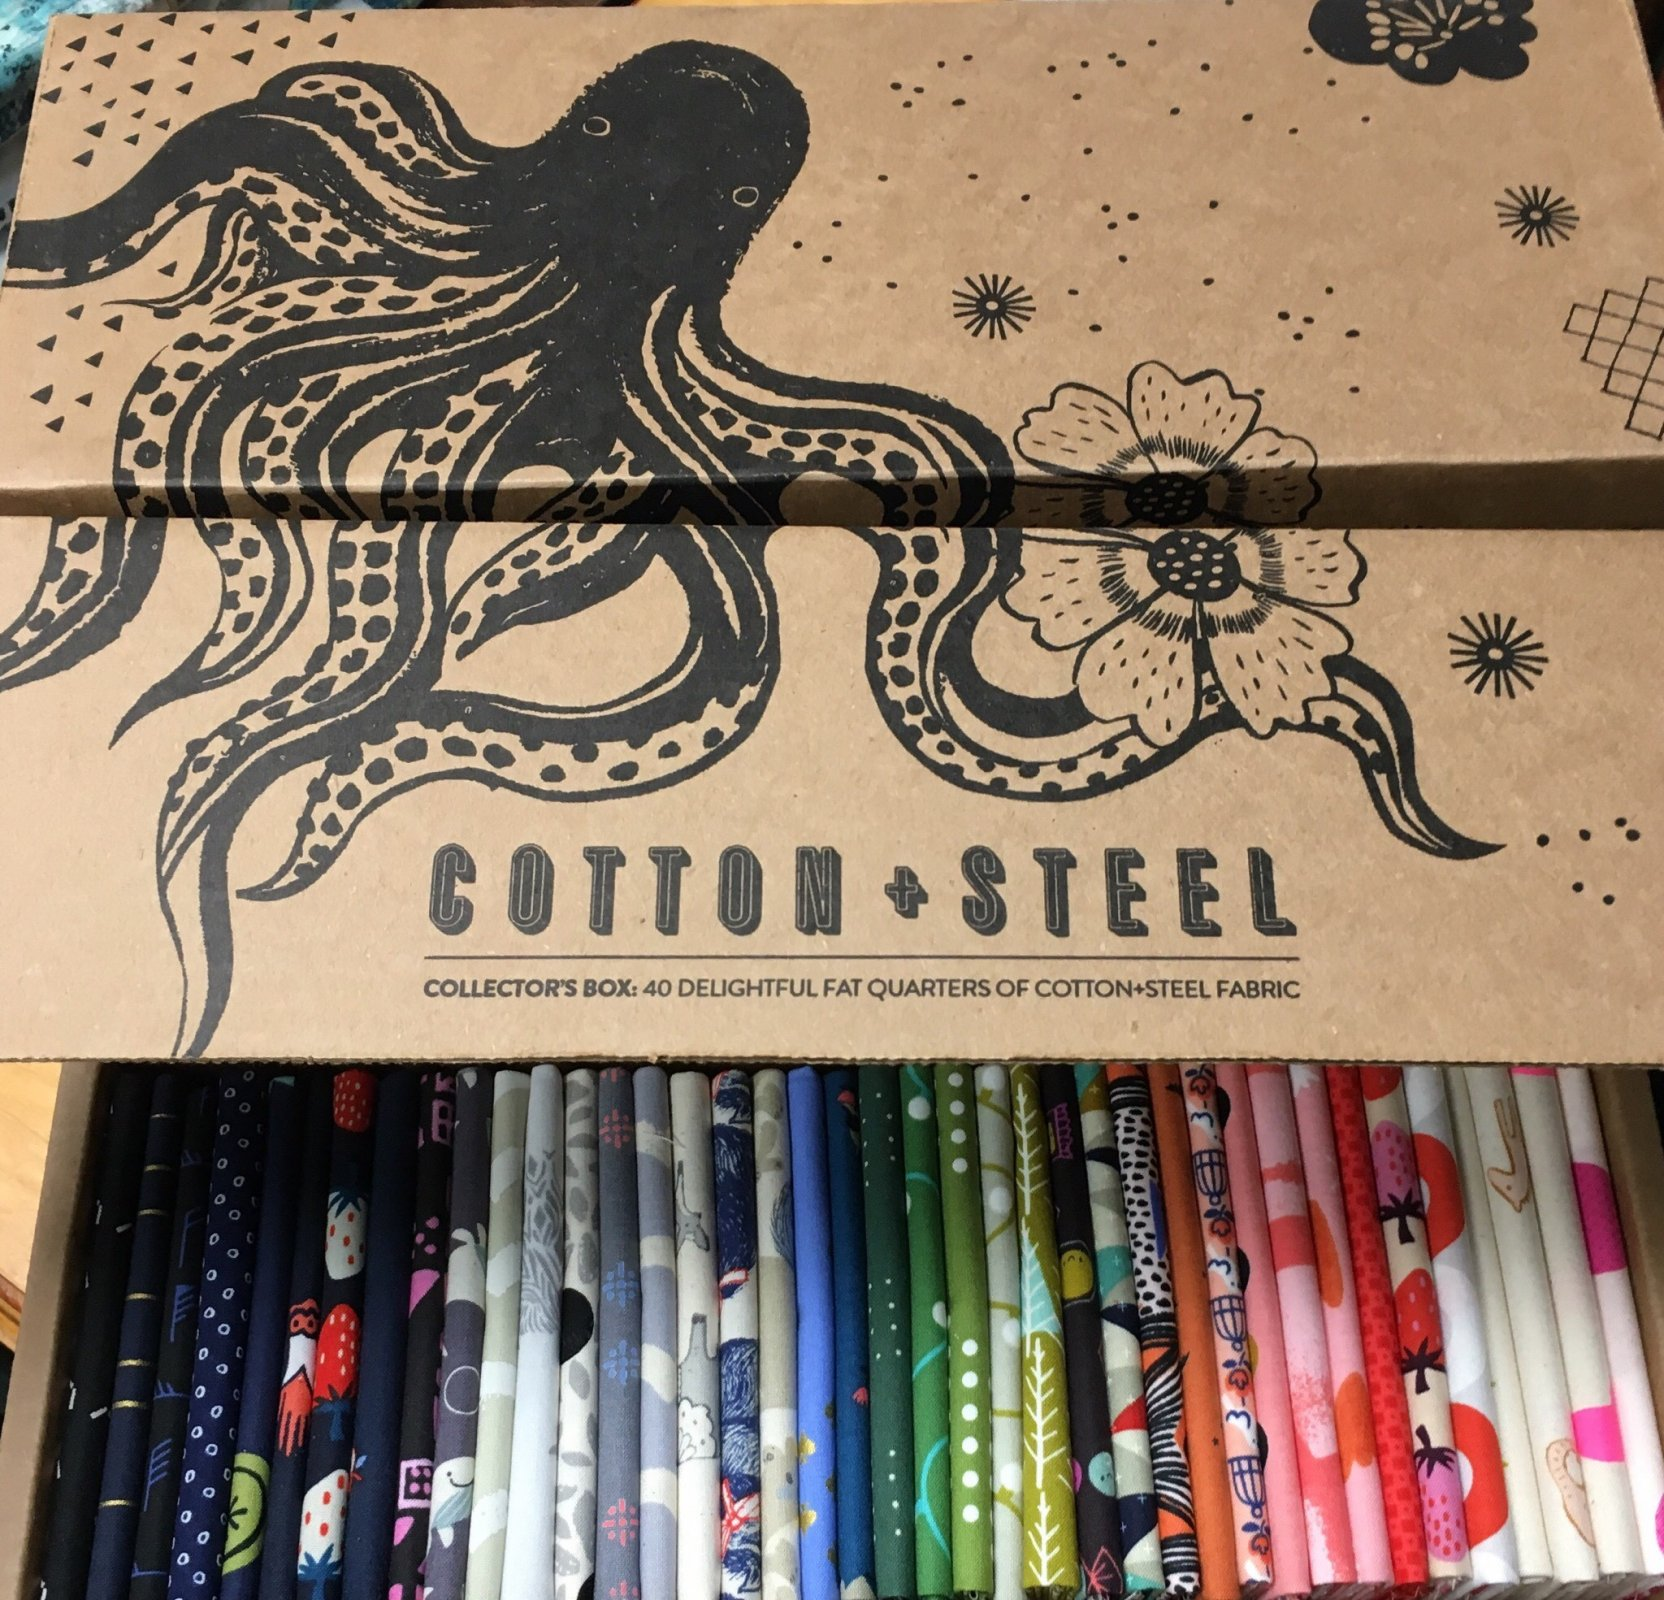 COTTON AND STEEL COLLECTORS BIG BOX